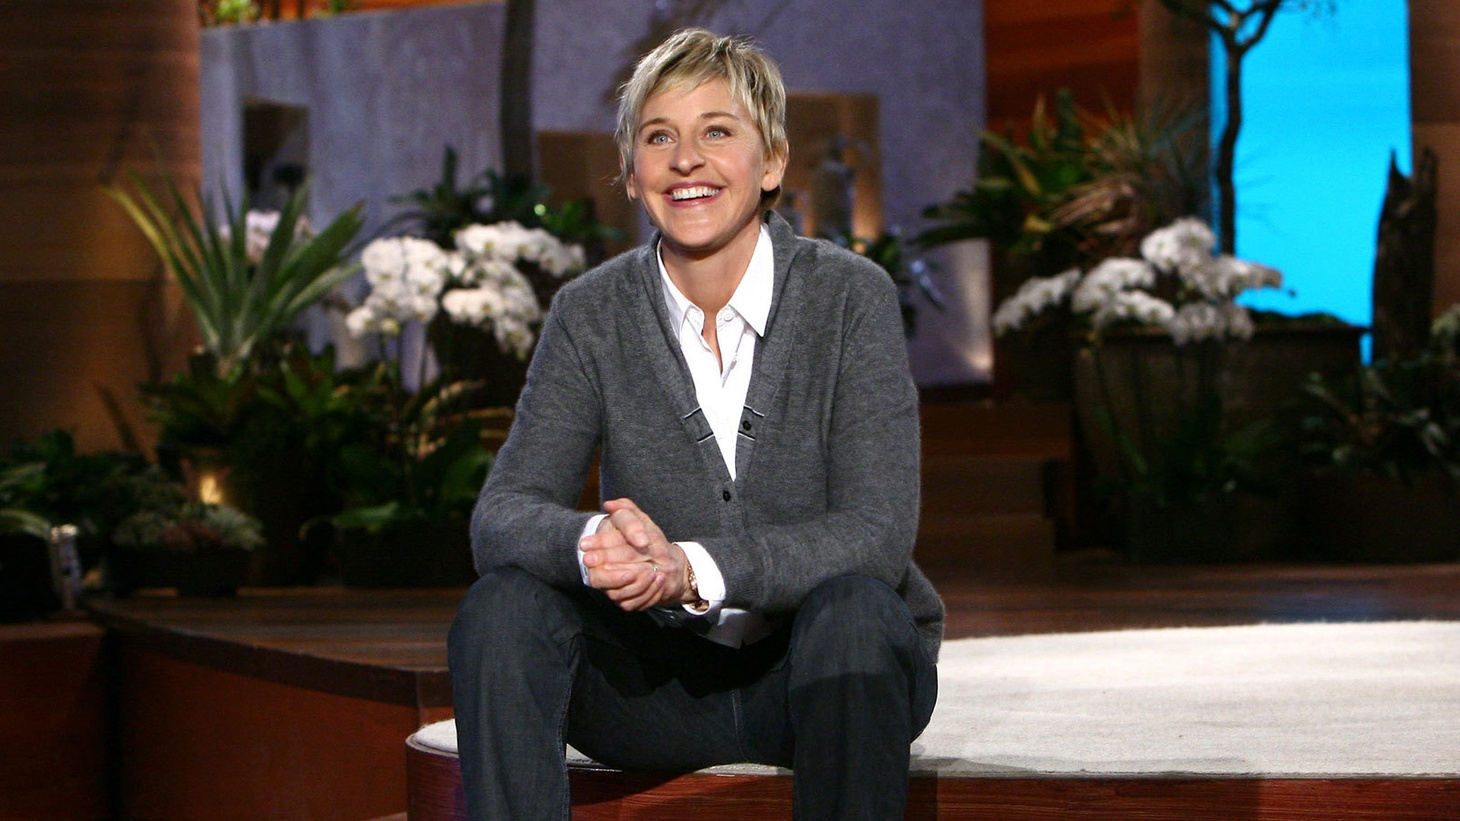 After 19 seasons of hosting her talk show, Ellen DeGeneres calls it quits. She says her decision to walk away was not influenced by multiple employee allegations of a toxic workplace.